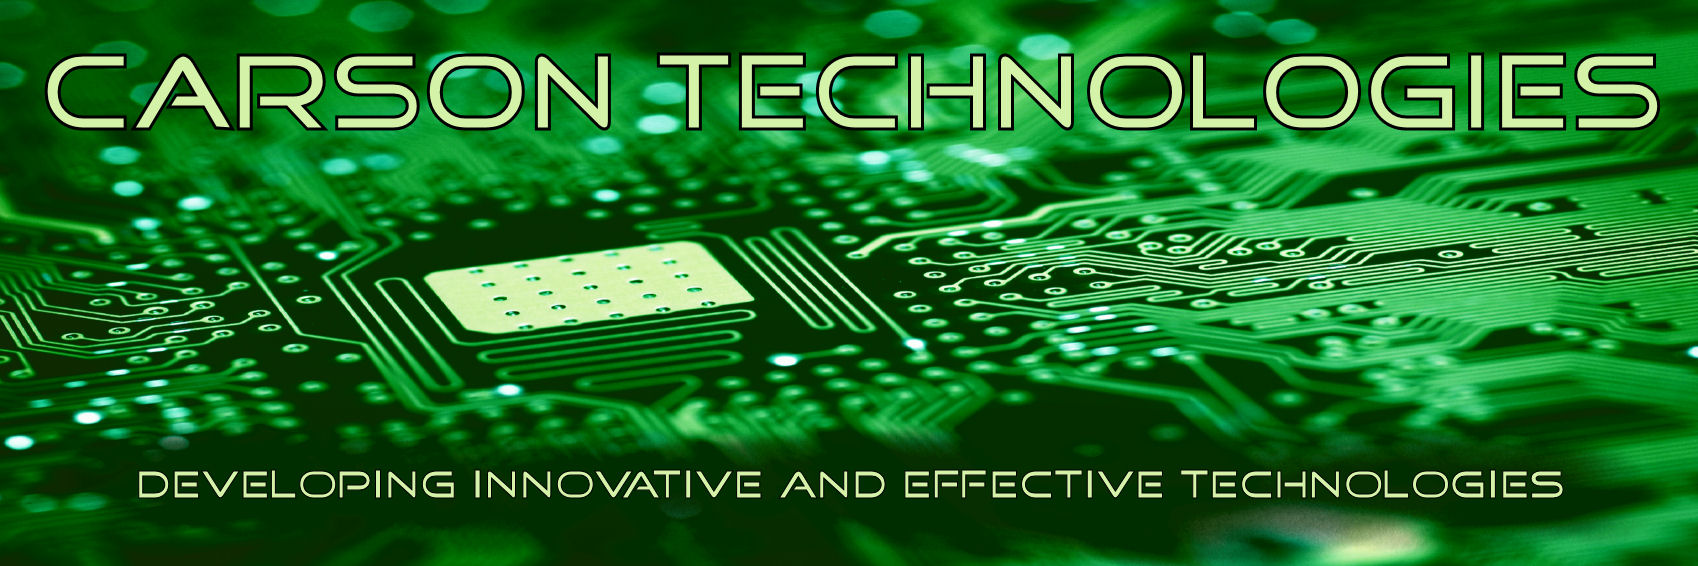 Carson Technologies - Developing Innovative and Effective Technologies